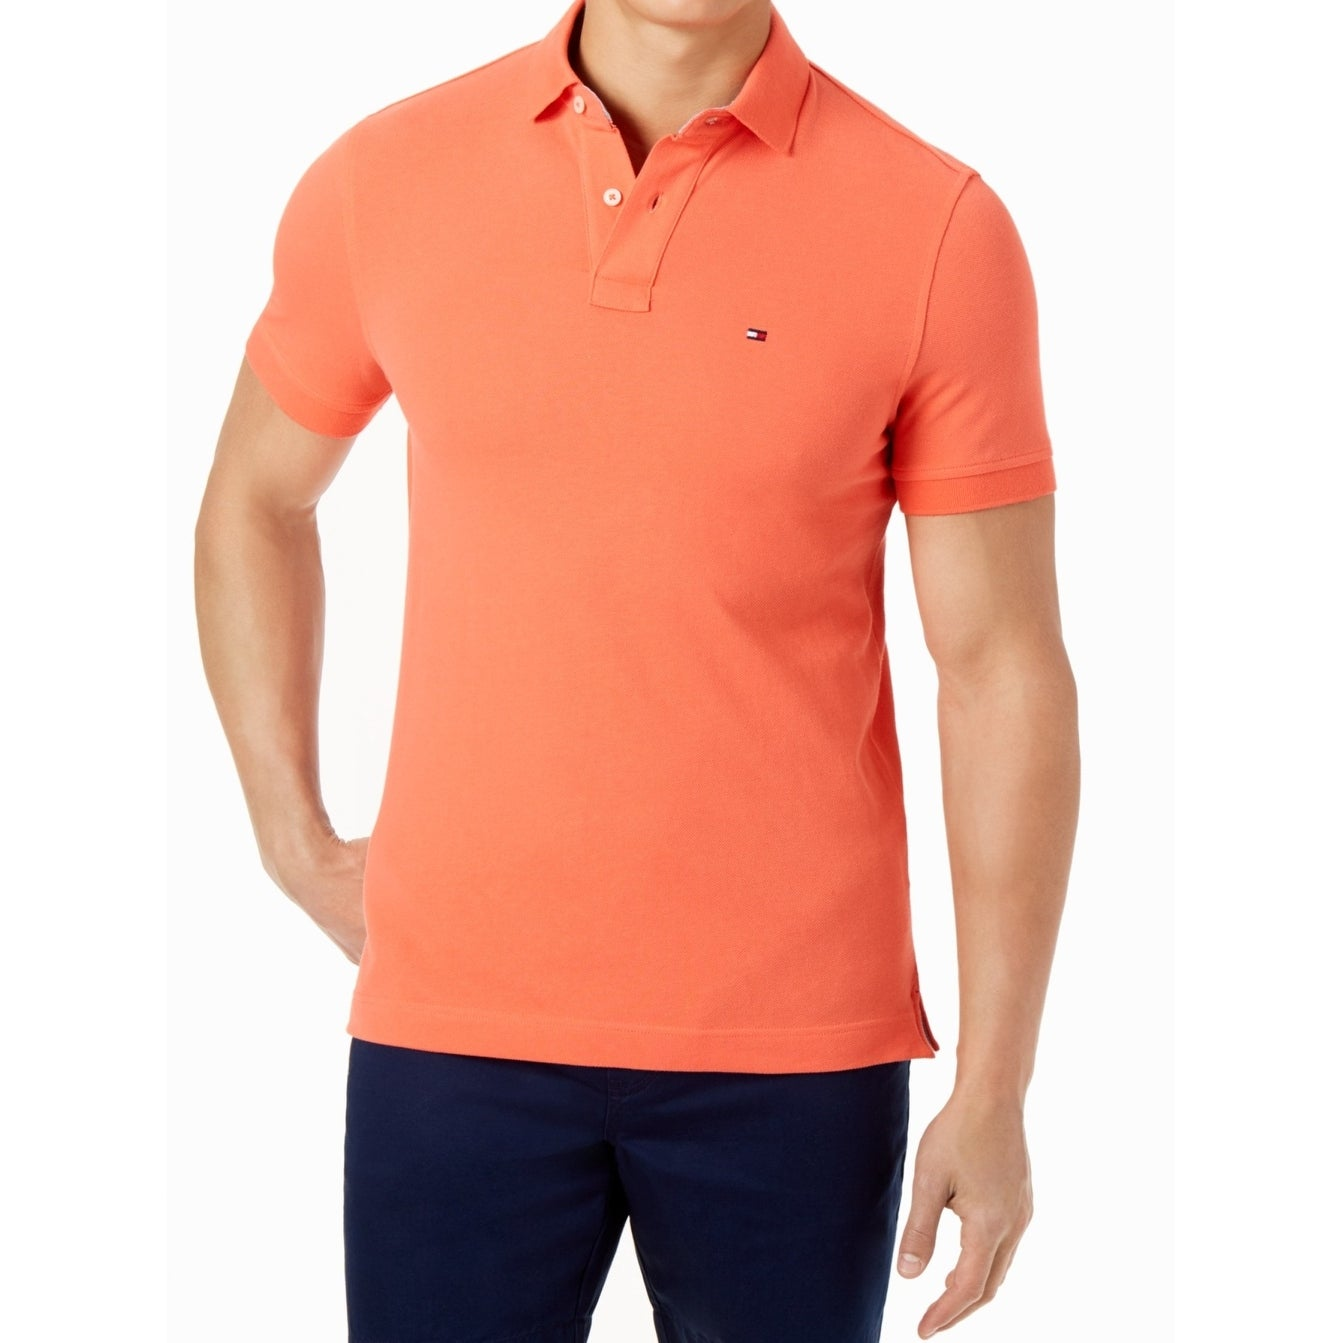 7fa6f522 Tommy Hilfiger Shirts | Find Great Men's Clothing Deals Shopping at  Overstock